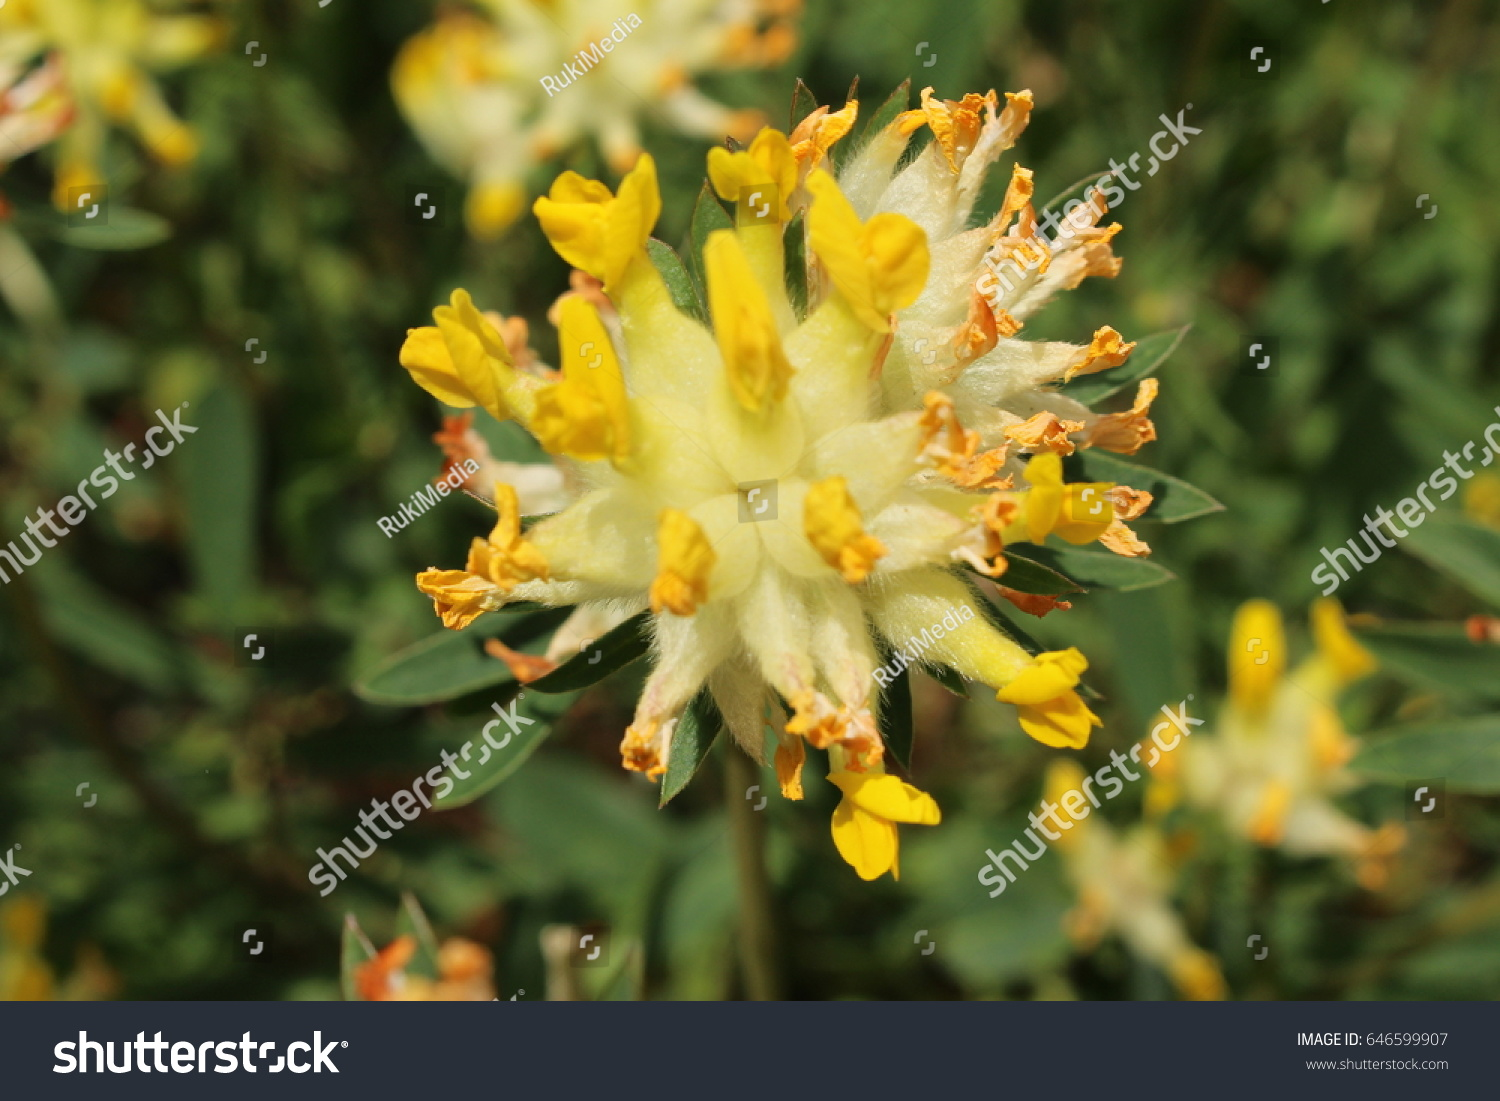 Yellow common kidney vetch flower or stock photo edit now yellow common kidney vetch flower or woundwort ladies fingers gemeiner mightylinksfo